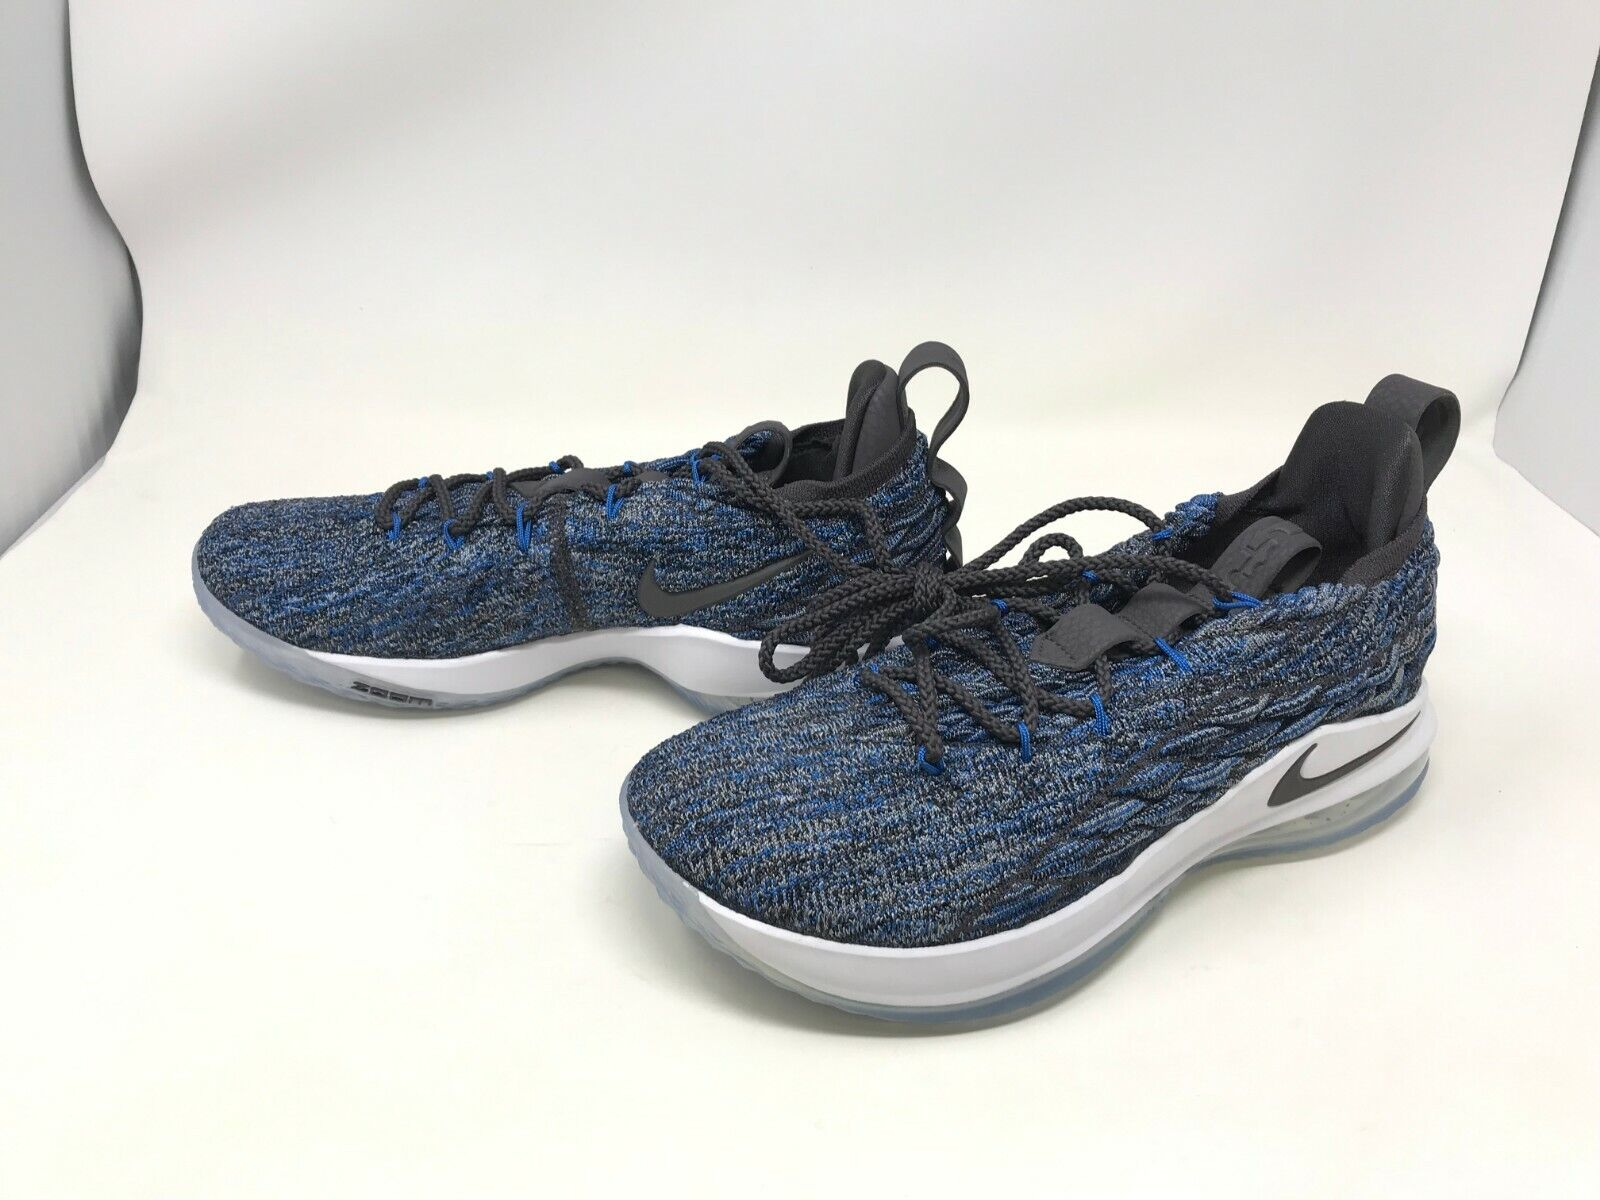 half off 10b40 1a4d0 Mens Nike (AO1755-400) Lebron 15 Low basketball shoes (406C)